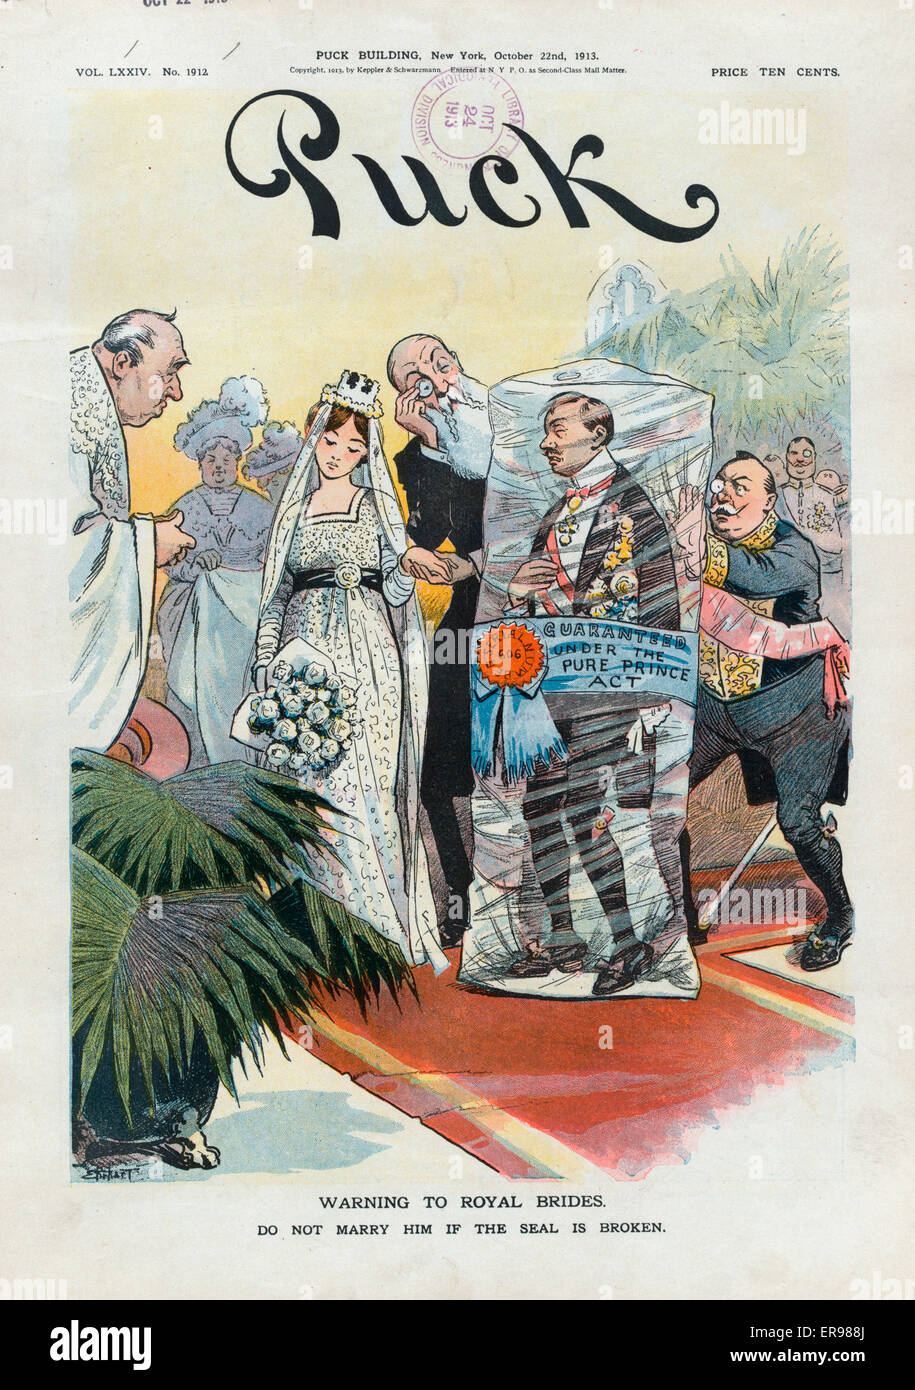 Warning to royal brides. Do not marry him if the seal is broken. Illustration shows a royal wedding where the groom - Stock Image